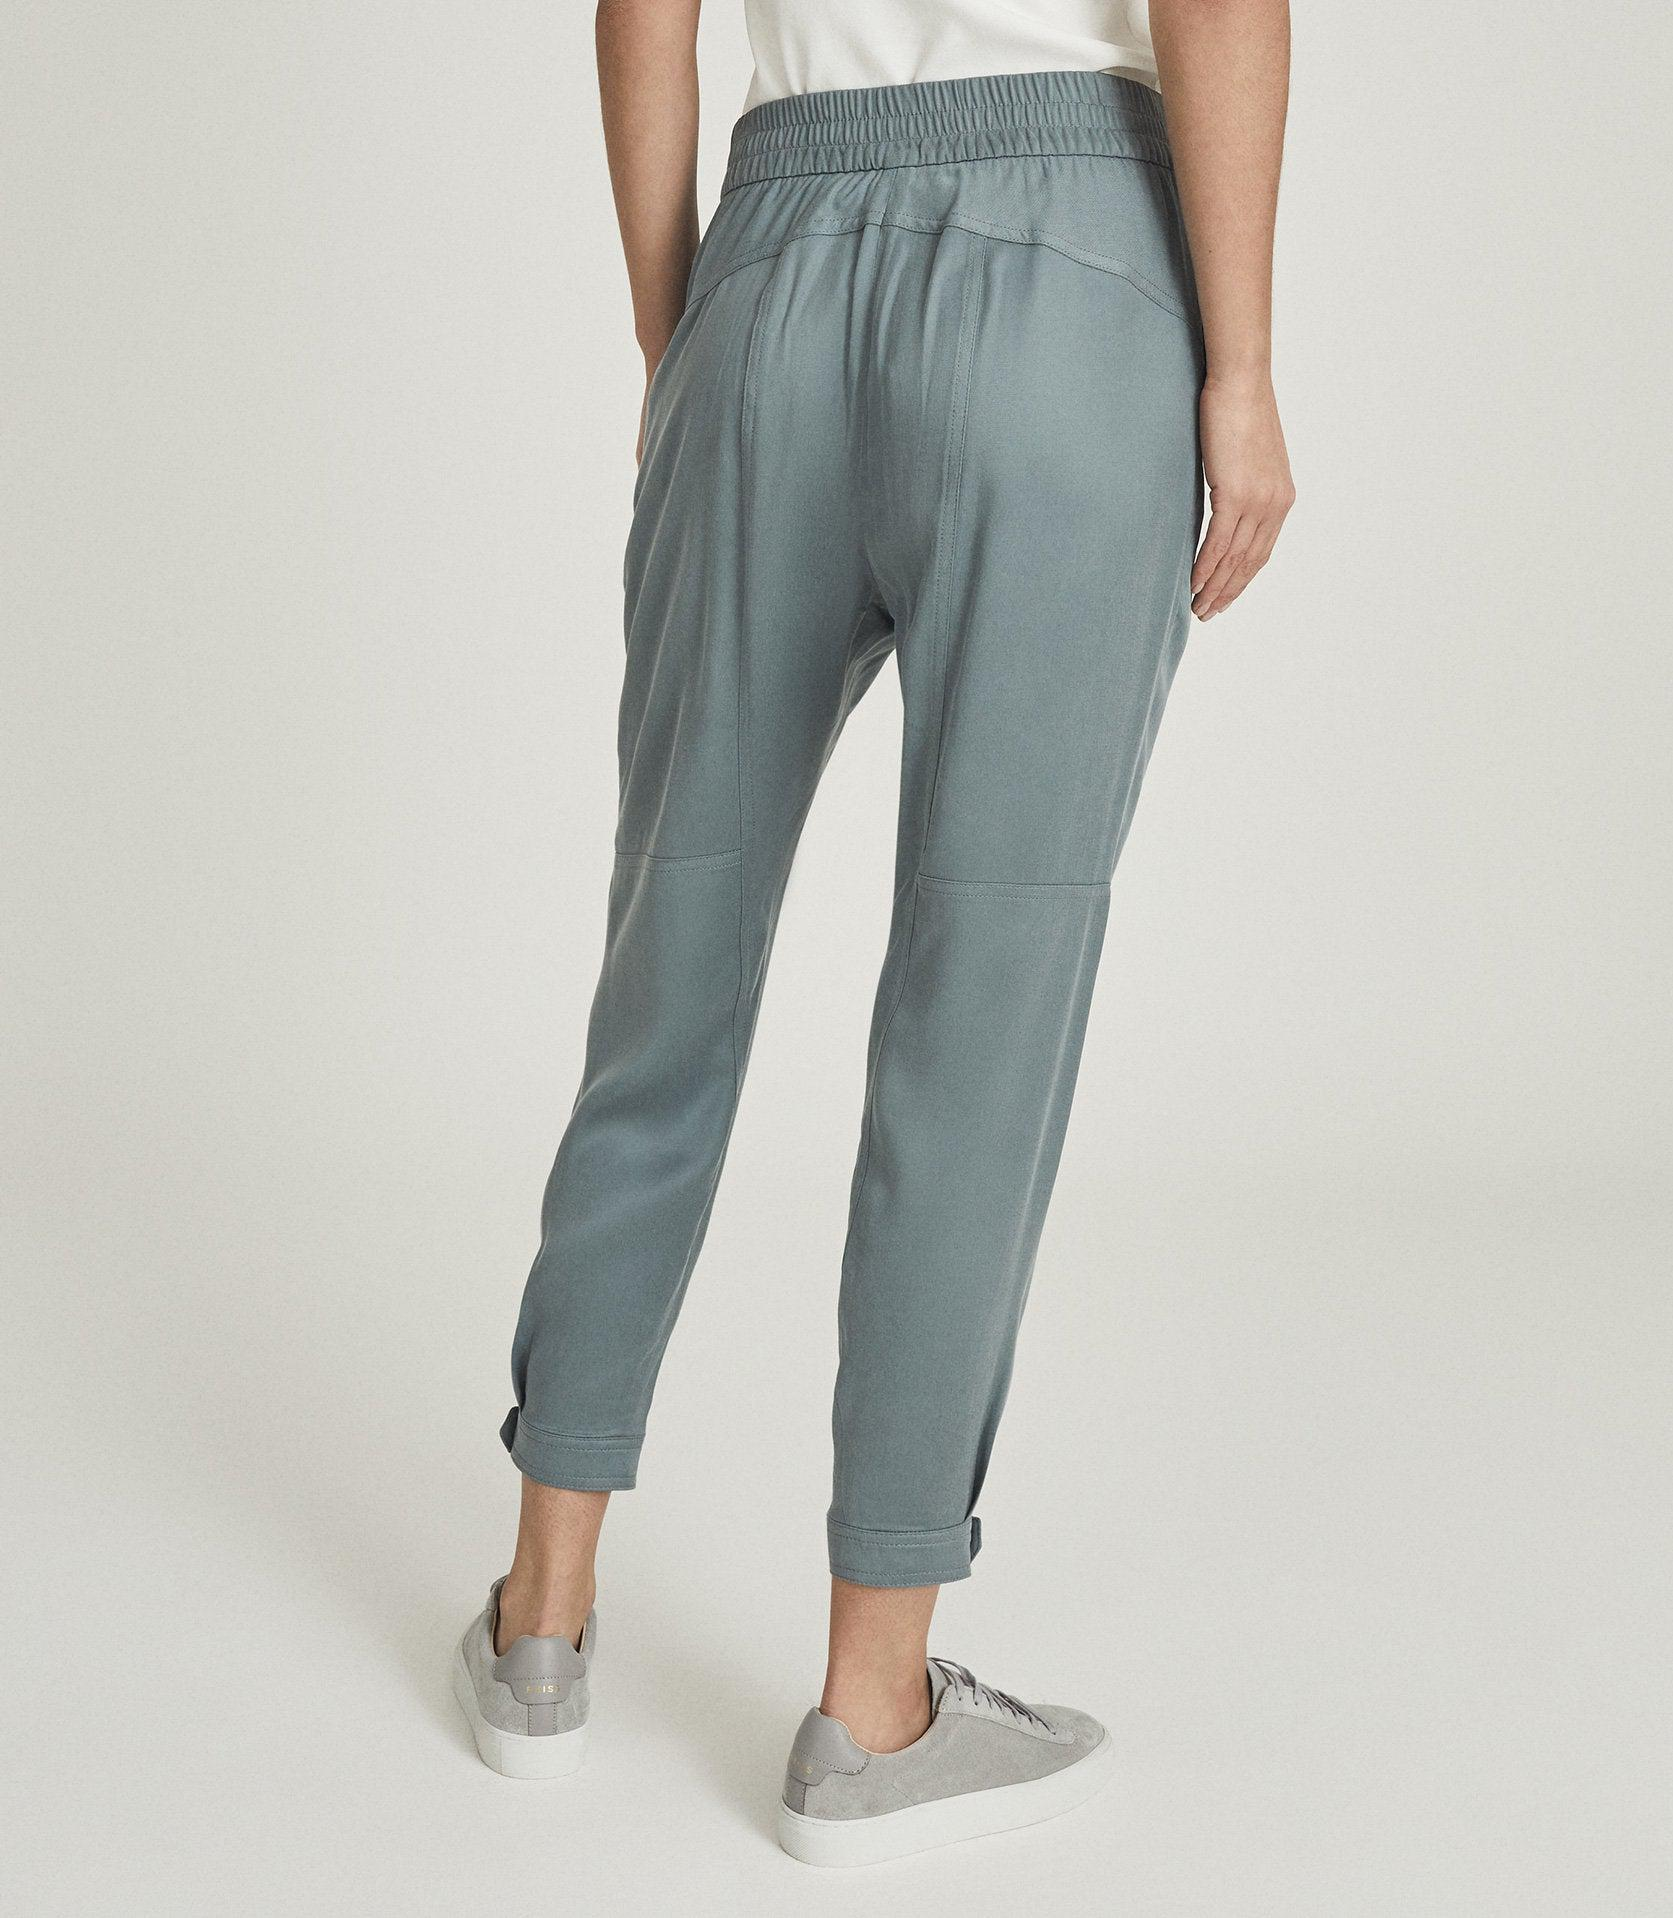 MARLOW - PLEAT FRONT TAPERED PANTS 3